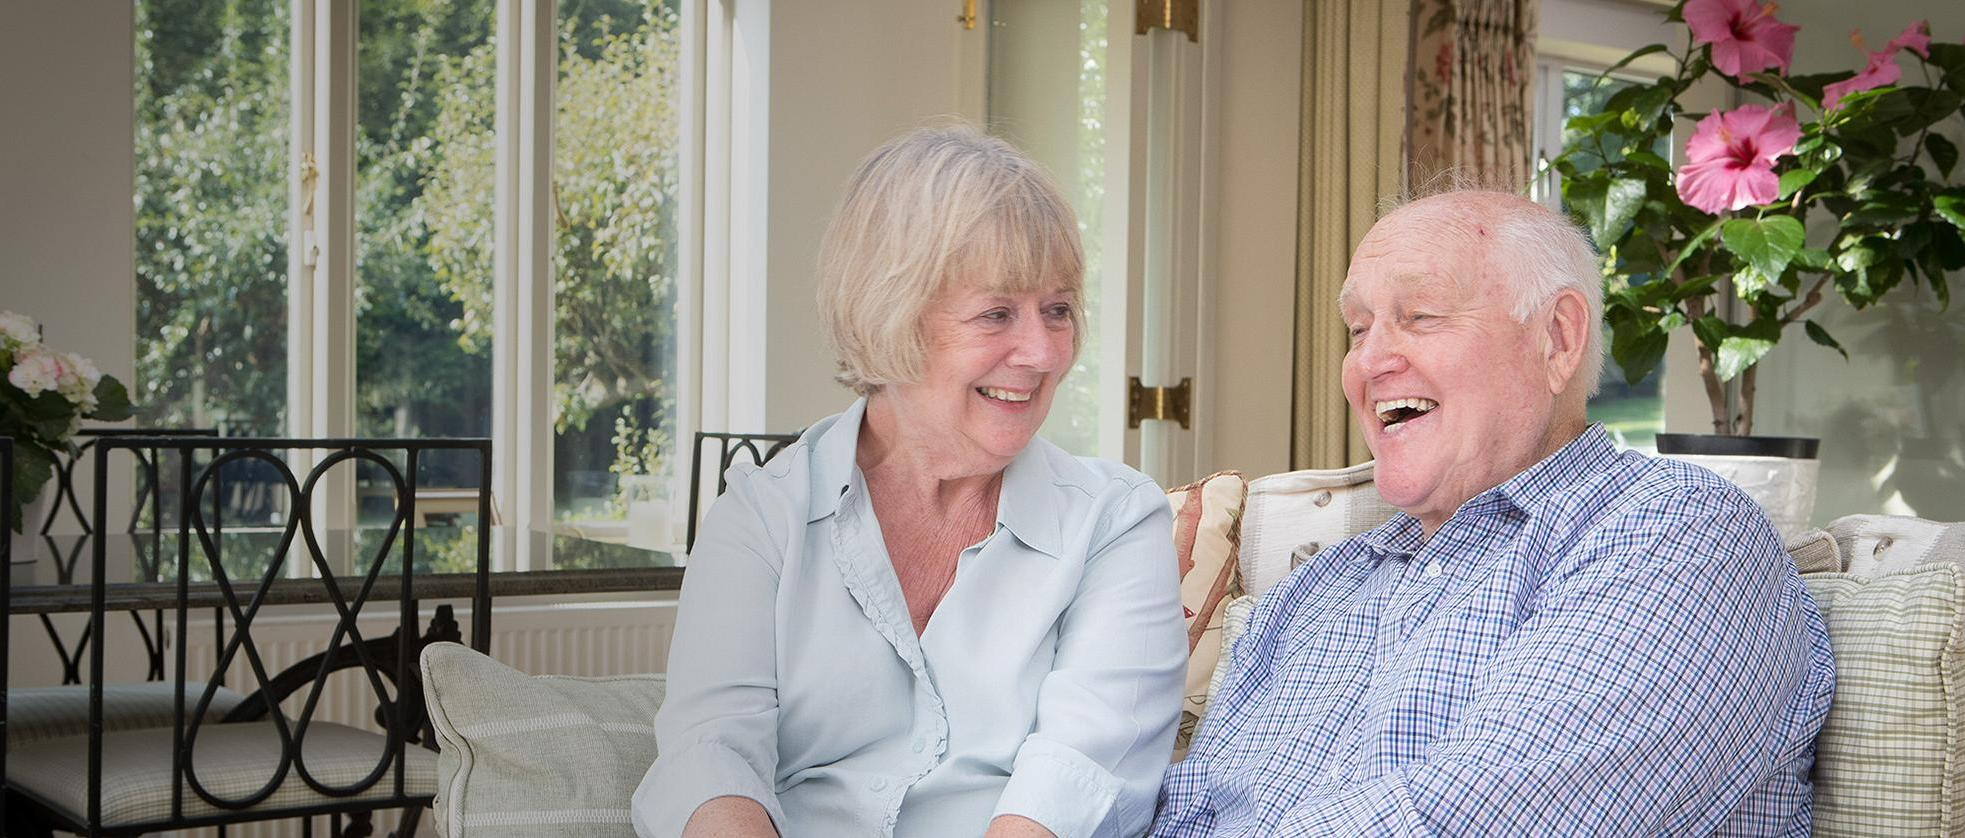 Home Instead Senior Care (Luton & Central Beds)